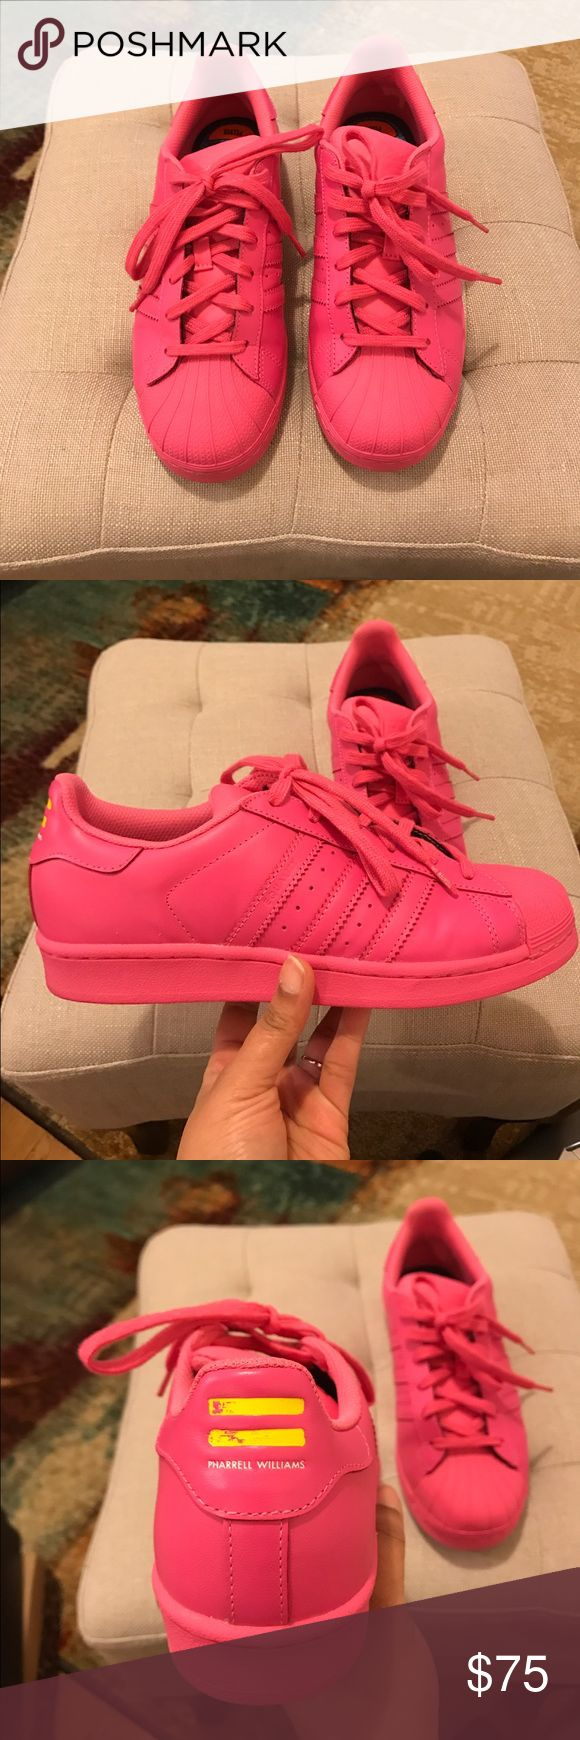 Superstar Supercolor Adidas Hot pink superstar supercolor adidas by Pharrell. Wore once in excellent condition. Runs big. I am a 7.5 in women's and this fits more like a 8. Price is firm! Adidas Shoes Sneakers